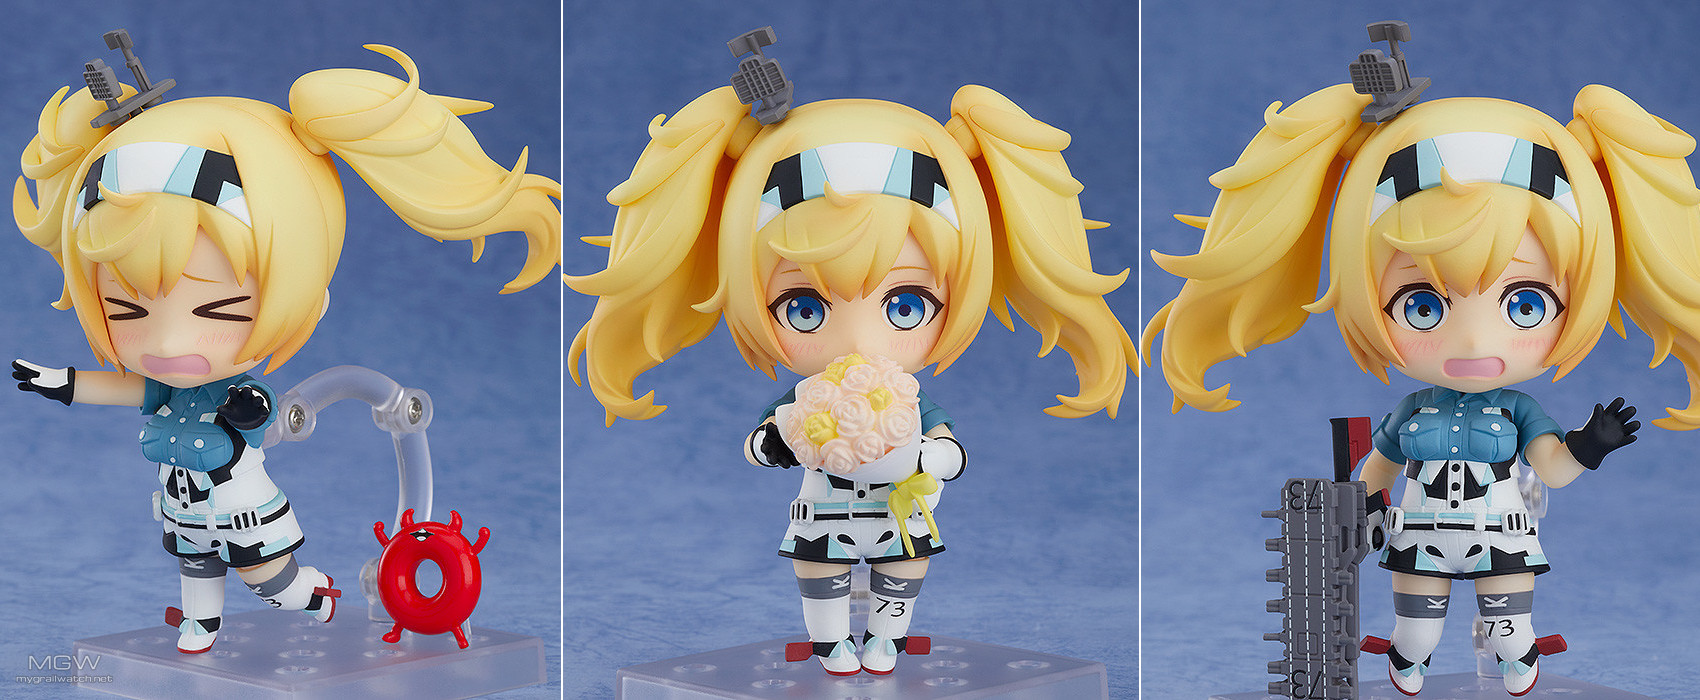 Nendoroid Gambier Bay by Good Smile Company from KanColle